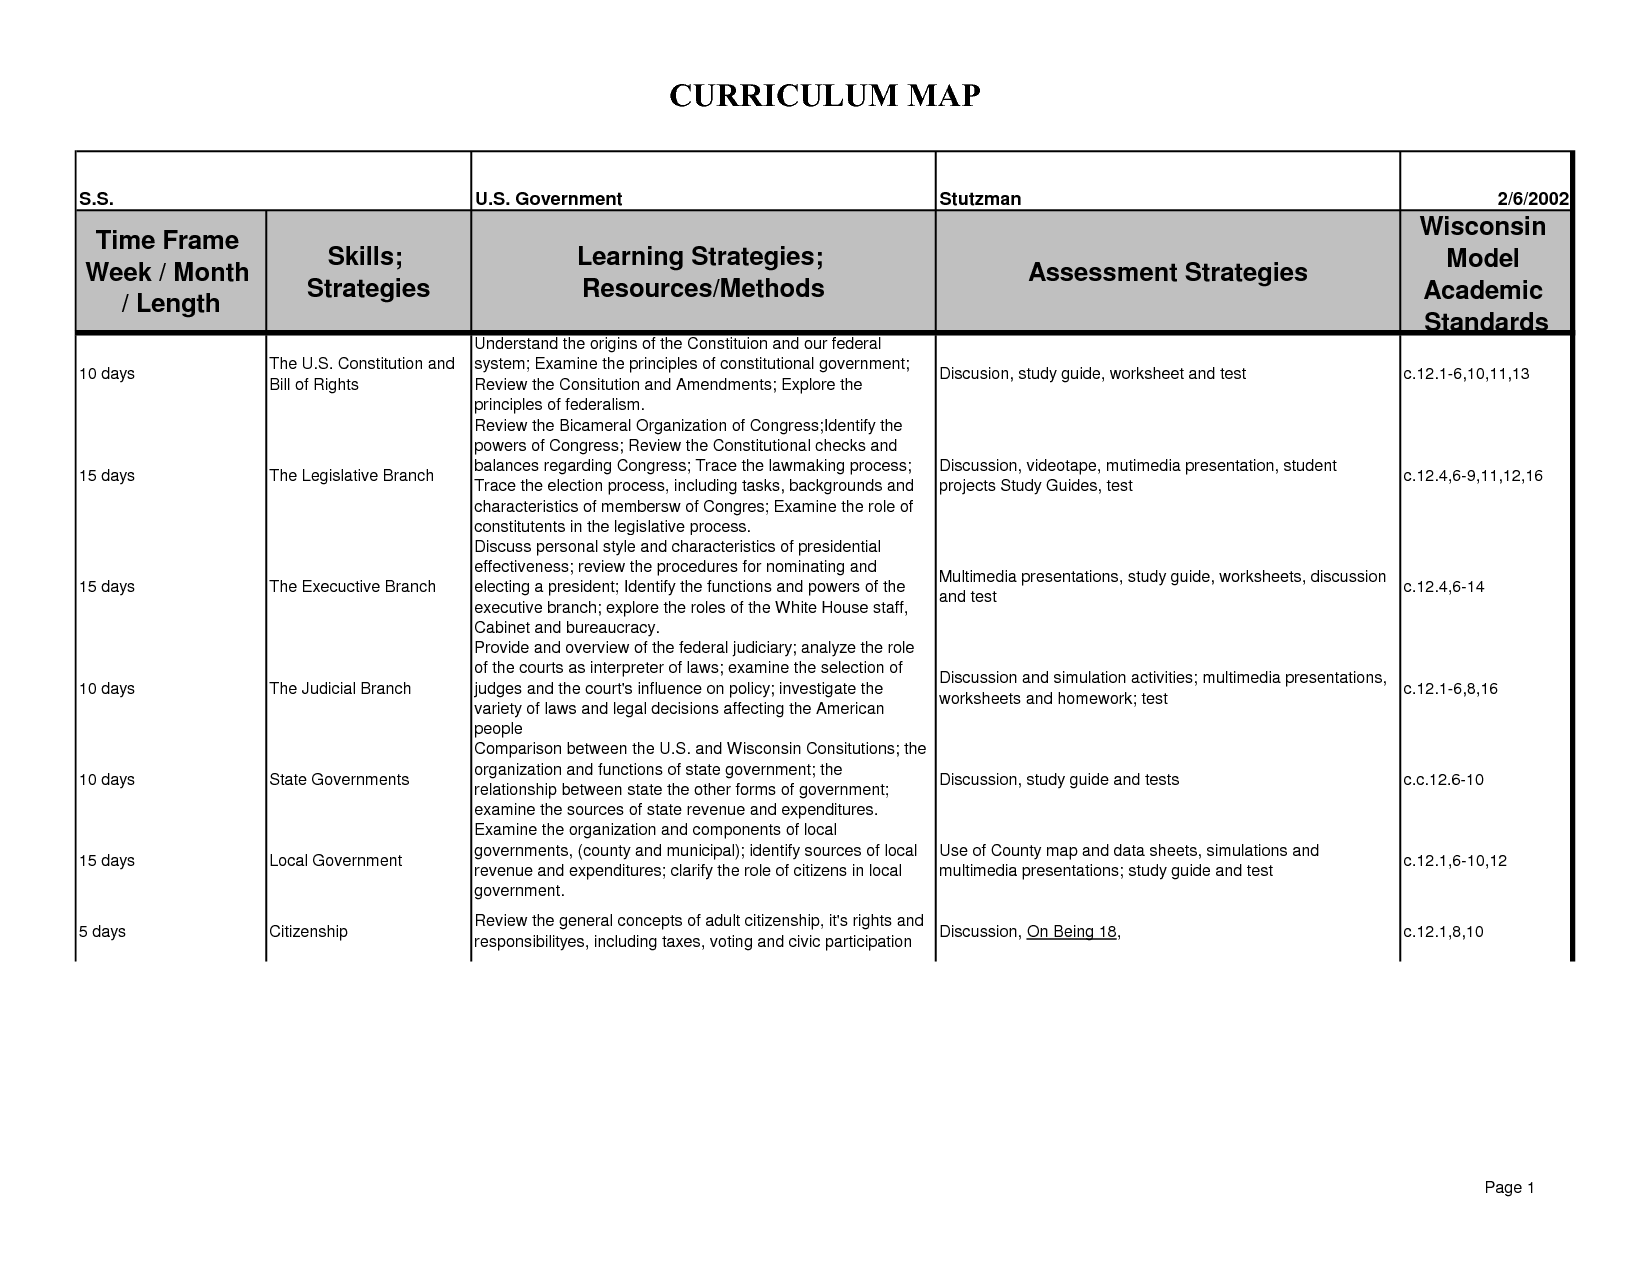 12 Best Images Of 11 Of The Constitution Worksheet